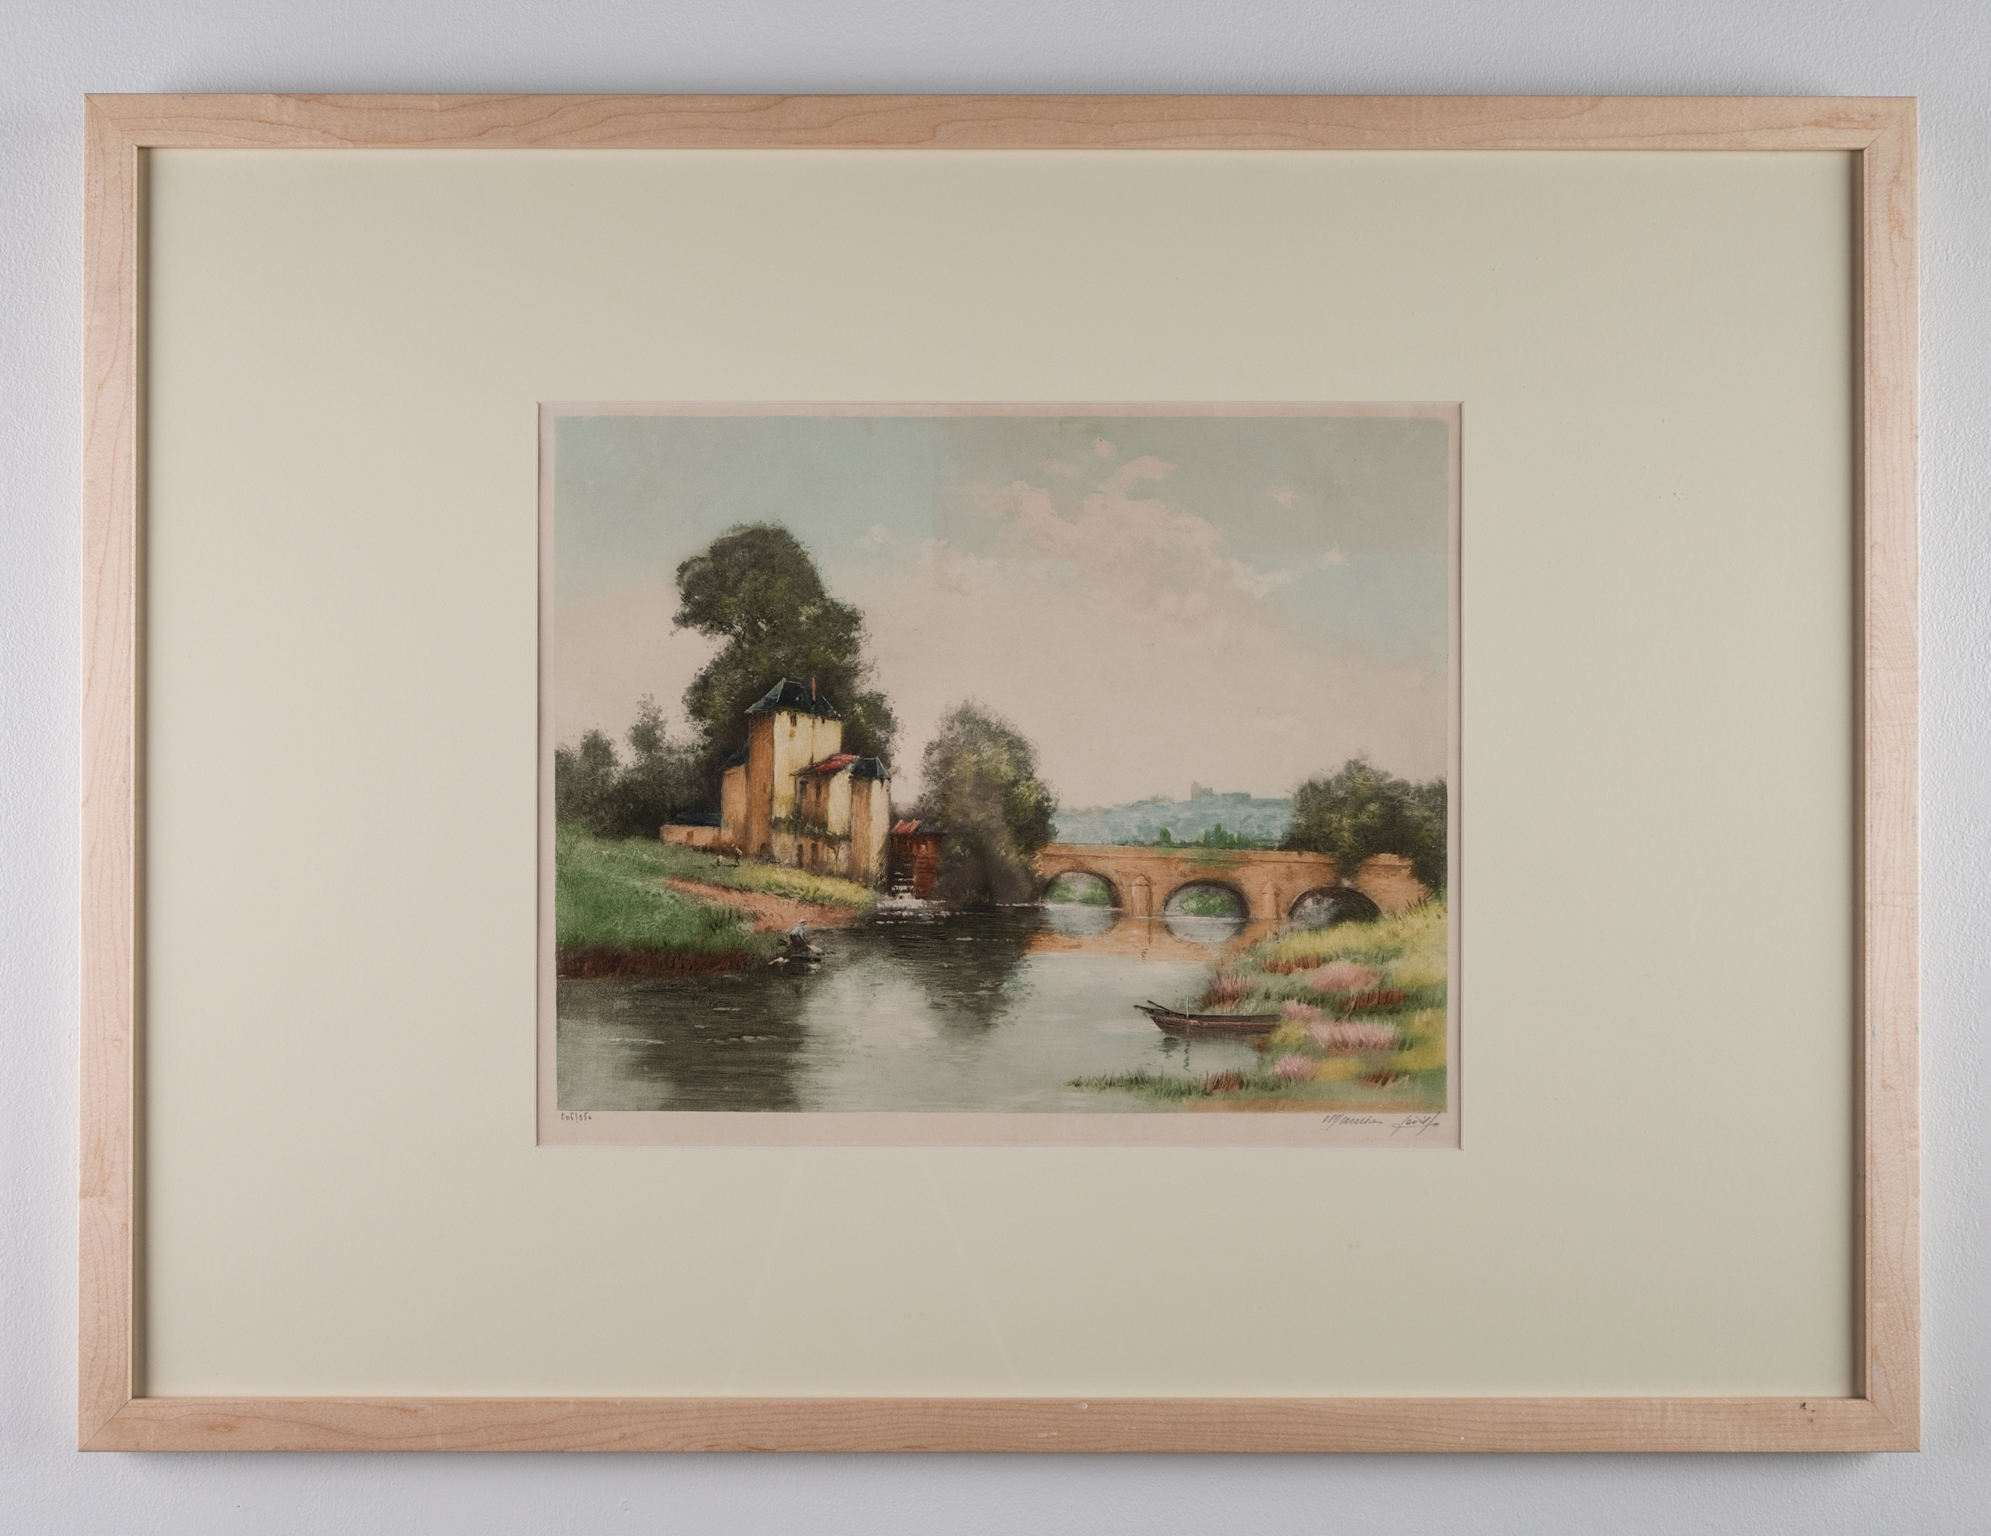 Maurice Levis, Vieux Moulin (The Old Mill), Etching, 14.5in. x 18in., Late 19th century